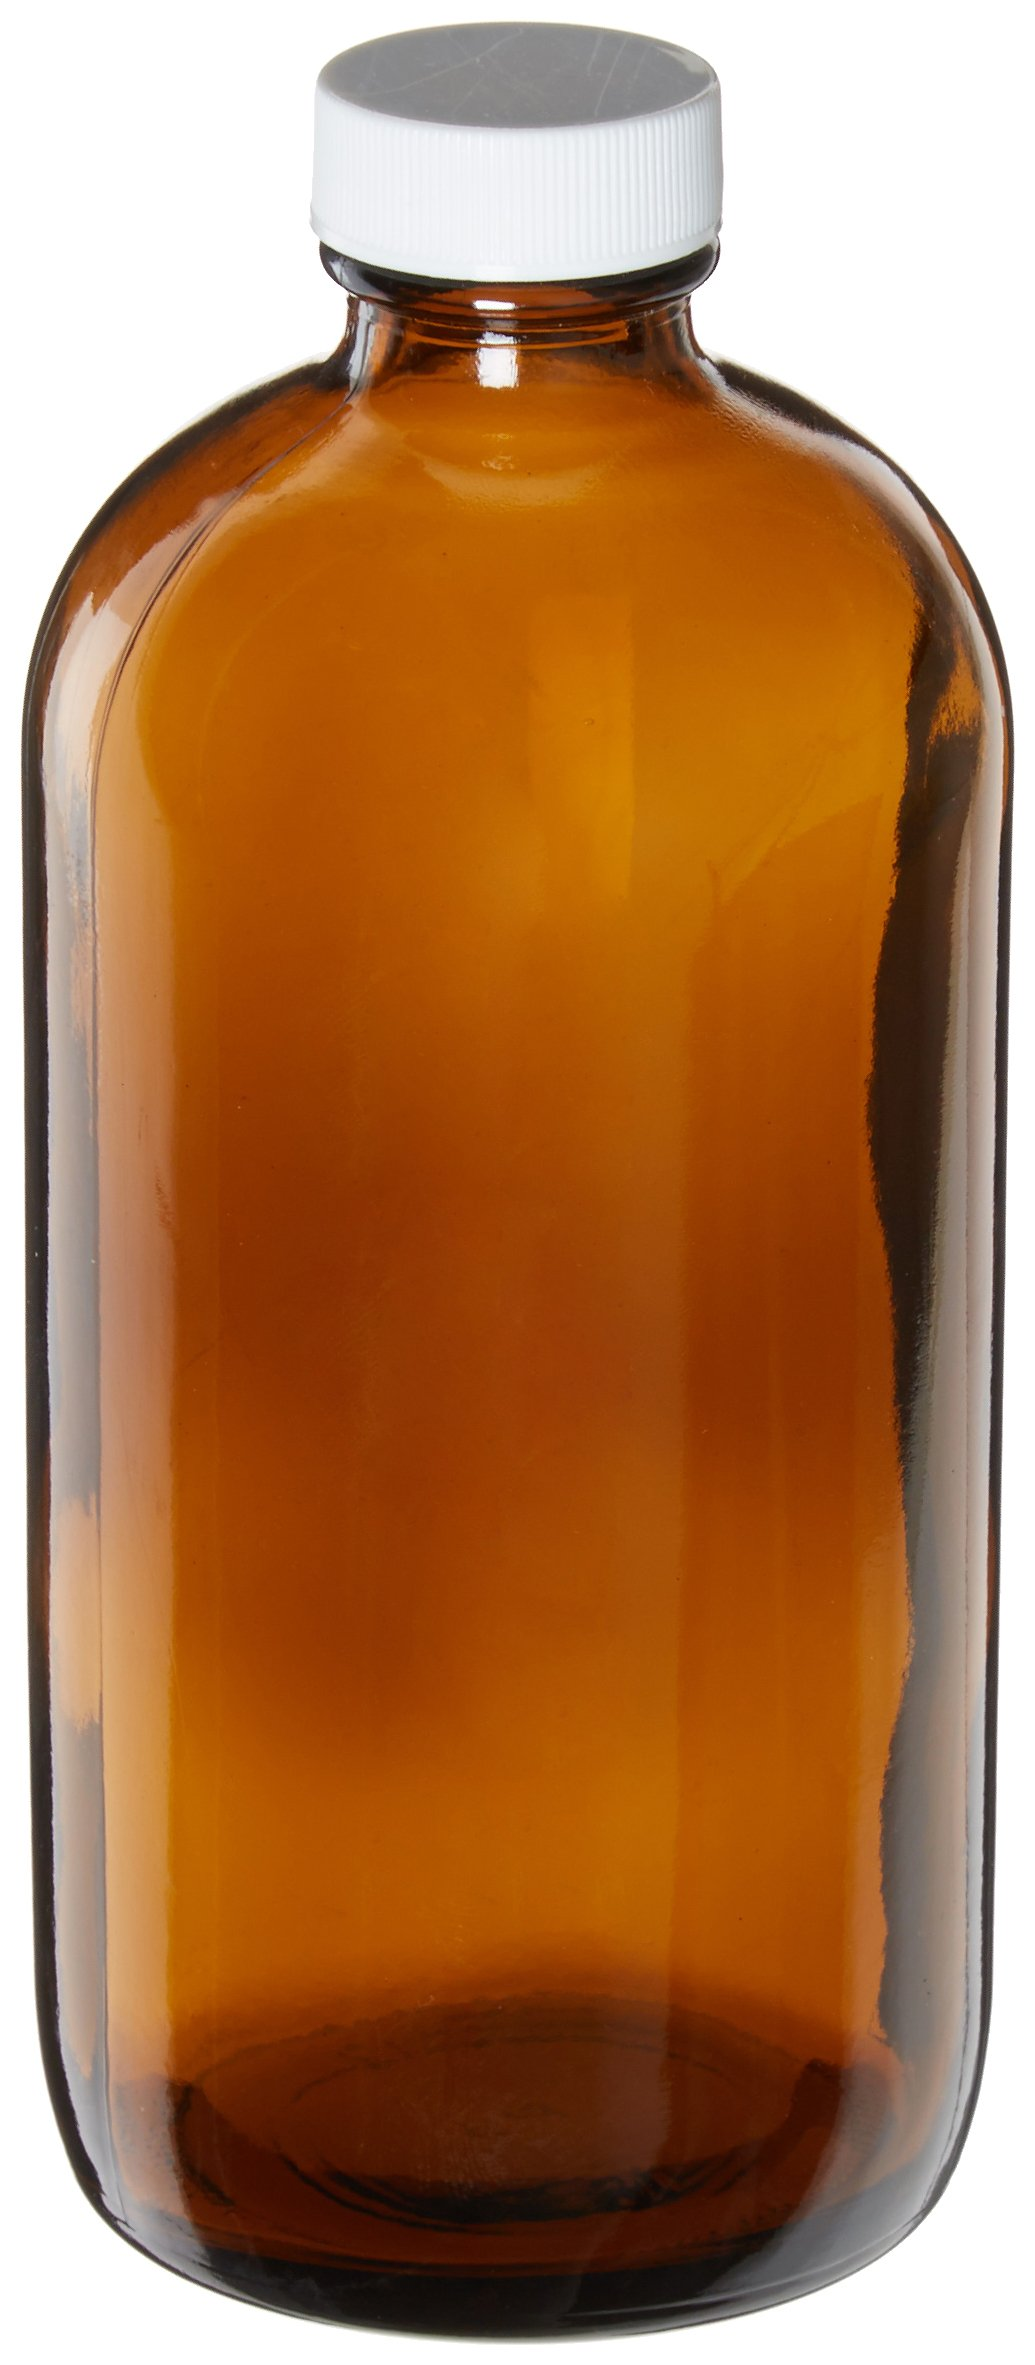 JG Finneran 9A-174 Amber Borosilicate Glass Standard Boston Round Bottle with White Polypropylene Closure and PTFE Lined, 28-400mm Cap Size, 5000mL Capacity (Pack of 12)